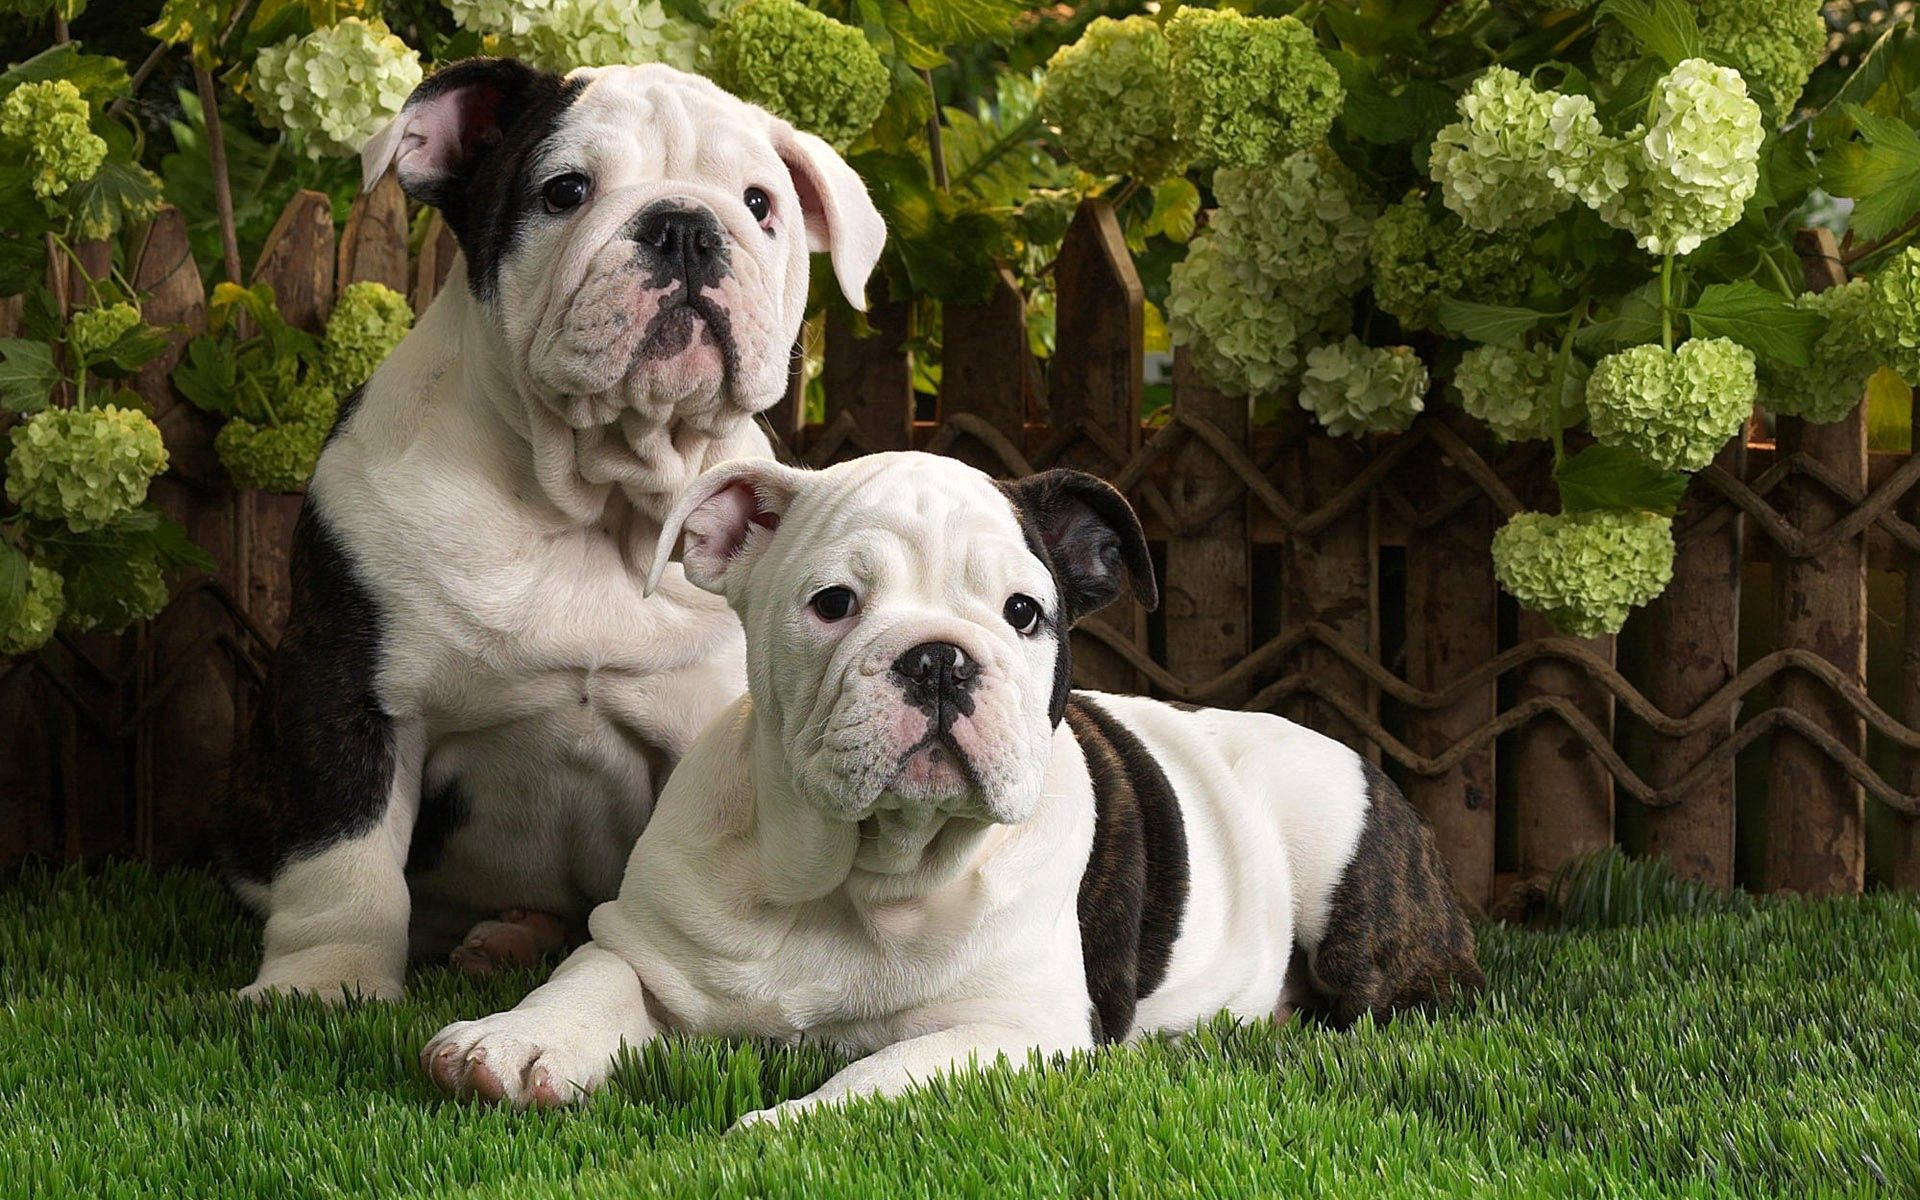 136370 download wallpaper Animals, Dogs, Bulldog, Spotted, Spotty, Grass, To Lie Down, Lie, Couple, Pair screensavers and pictures for free